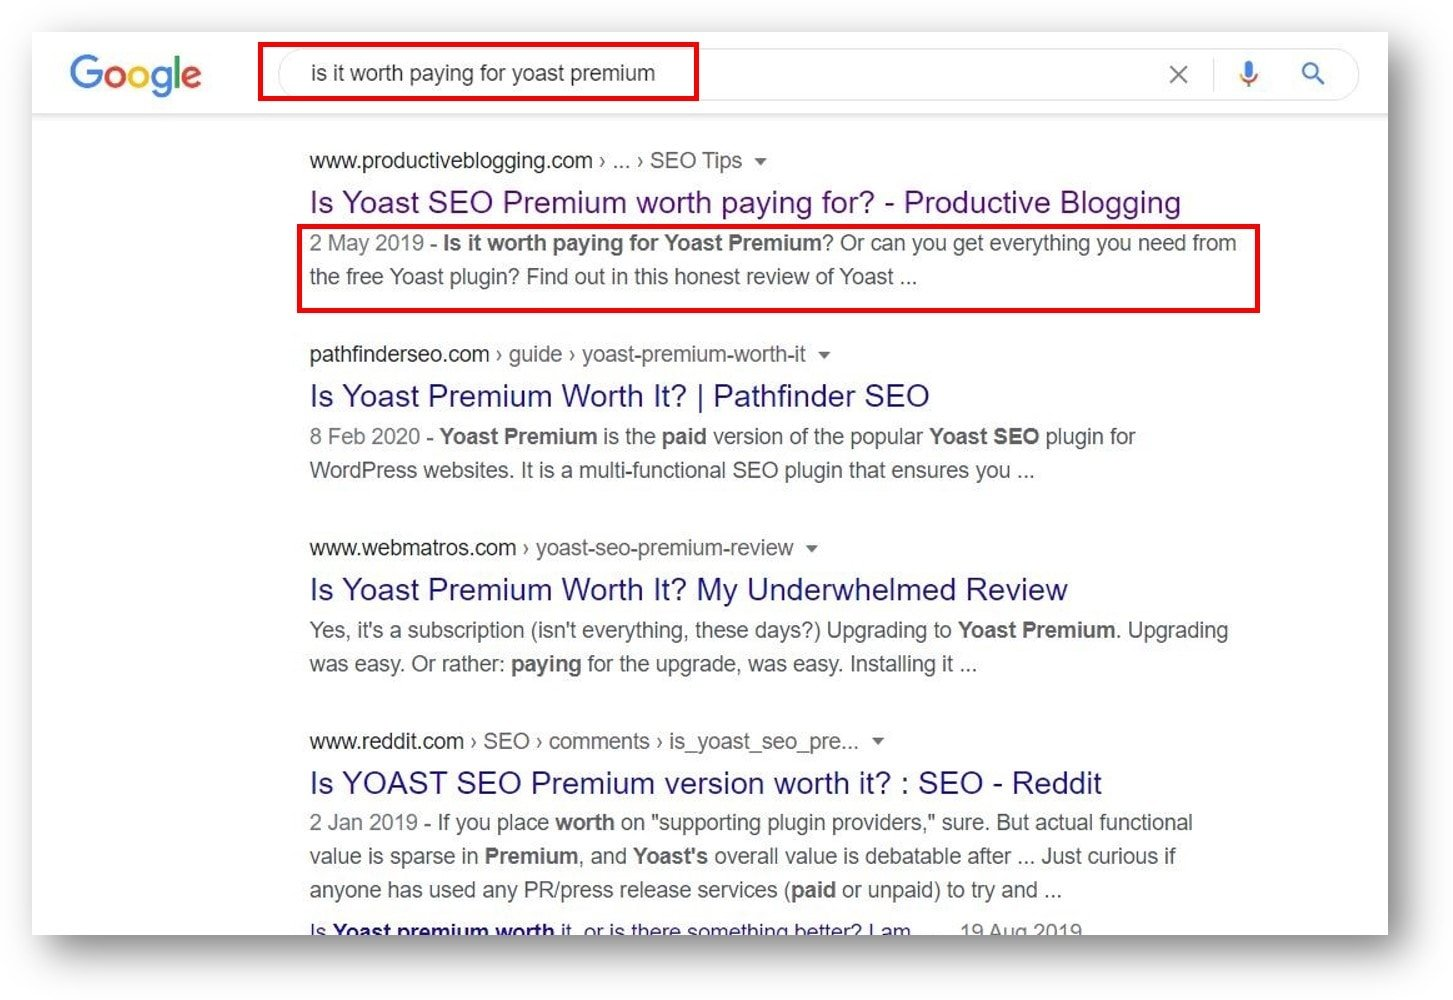 Example of a meta description which includes the exact same phrase as the phrase searched for on Google.